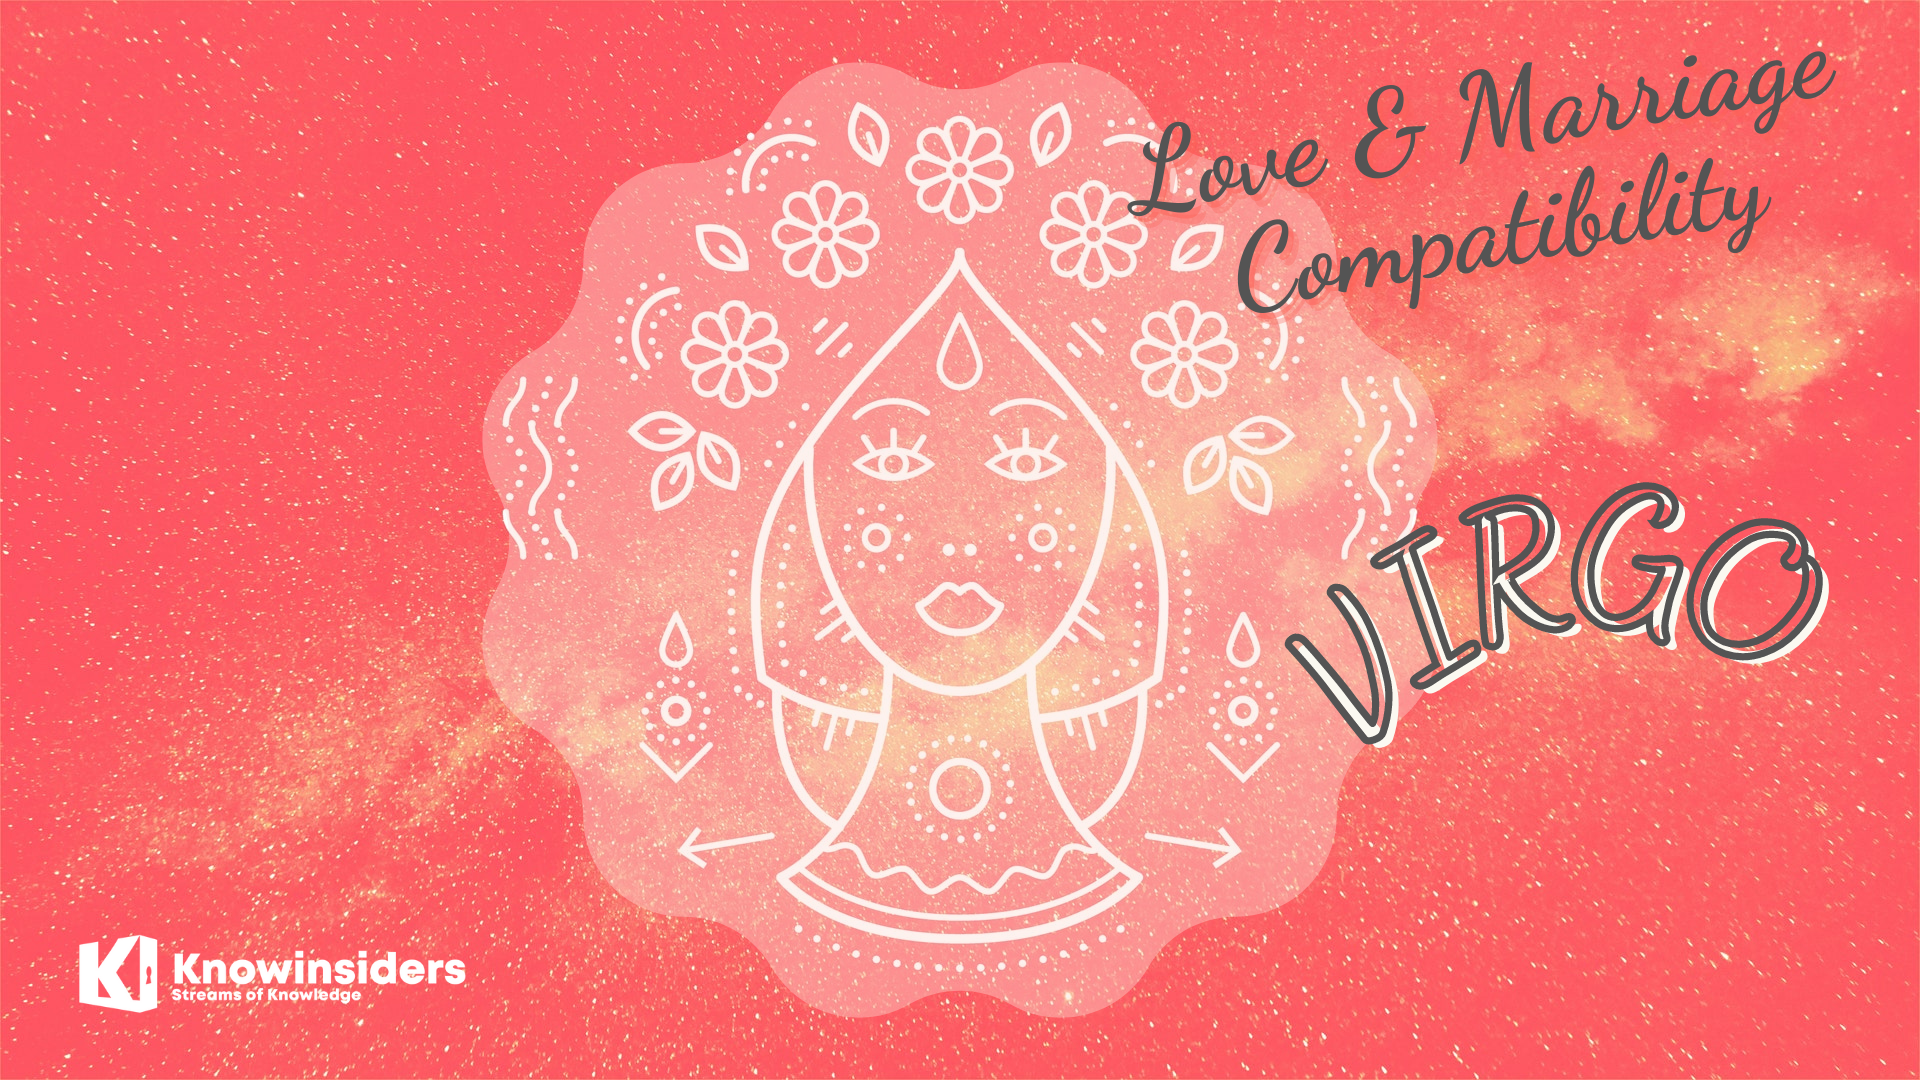 VIRGO - Top 3 Most Compatible Zodiac Signs for Love & Marriage